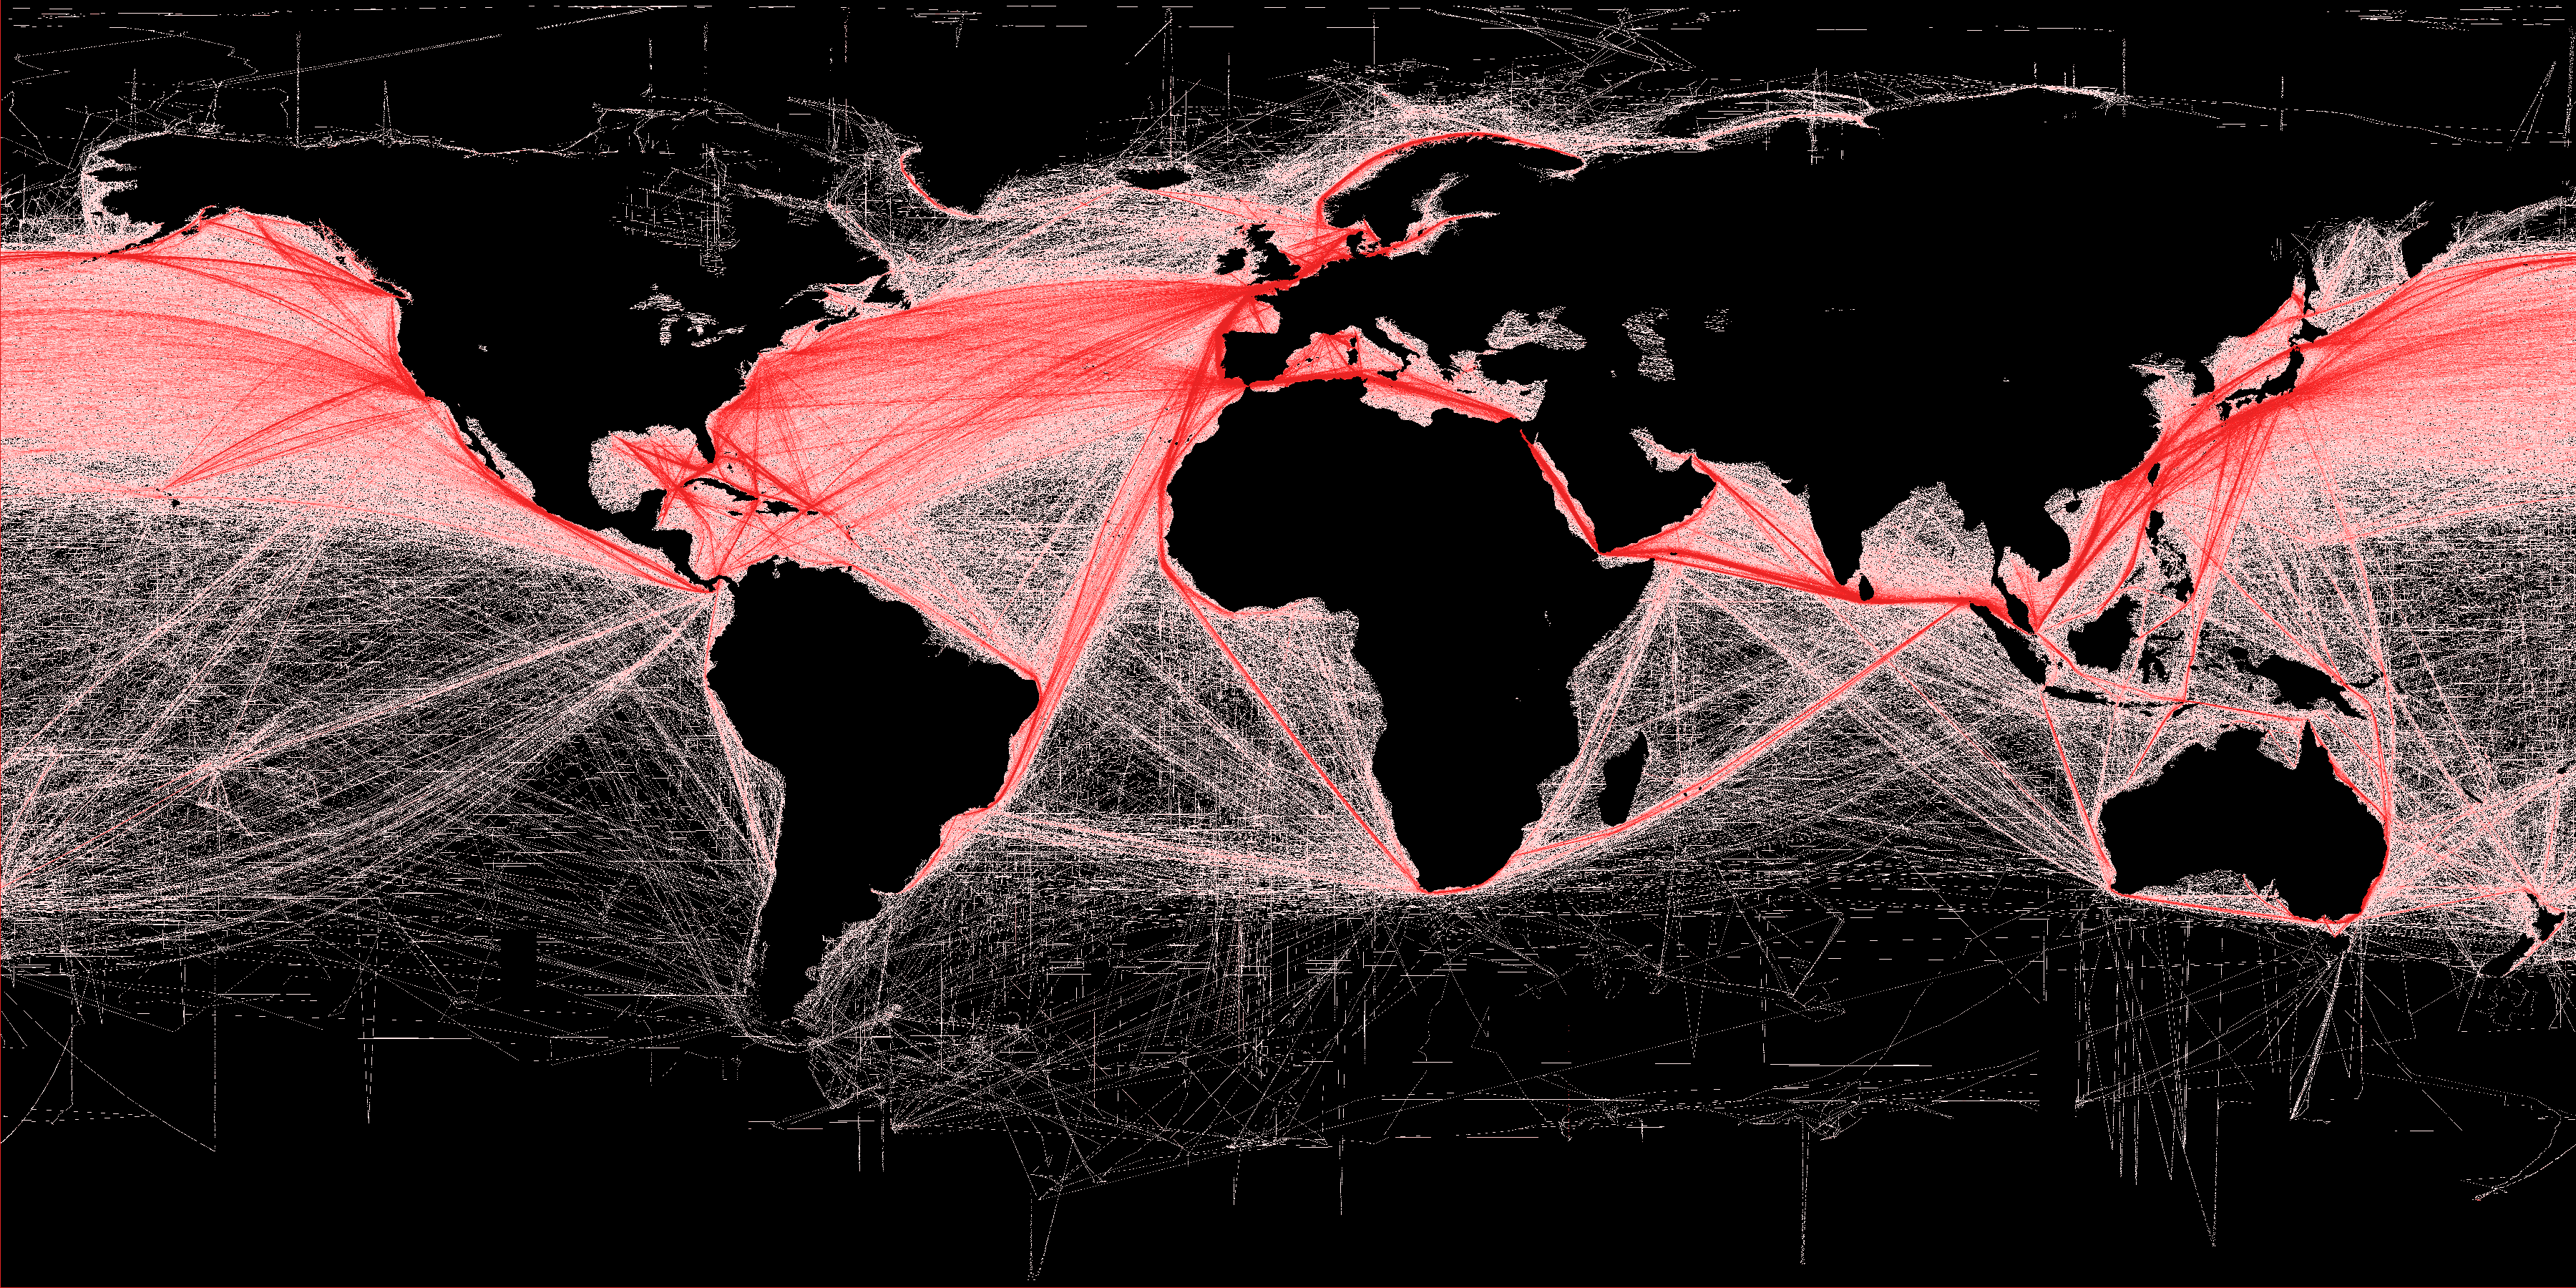 Map of human impact on marine ecosystems, global shipping routes